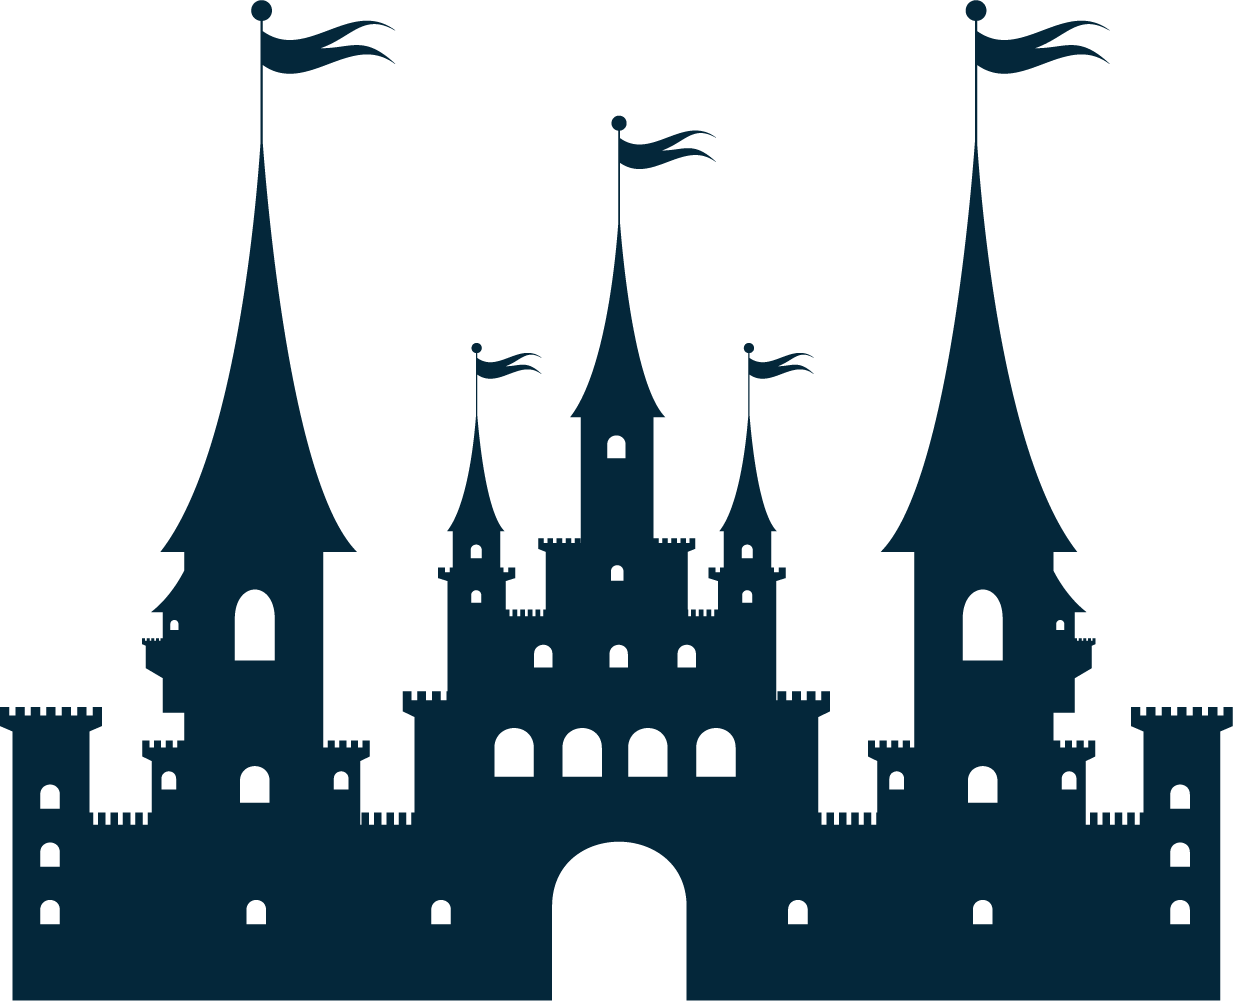 Castle Silhouette At Getdrawings Com Free For Personal